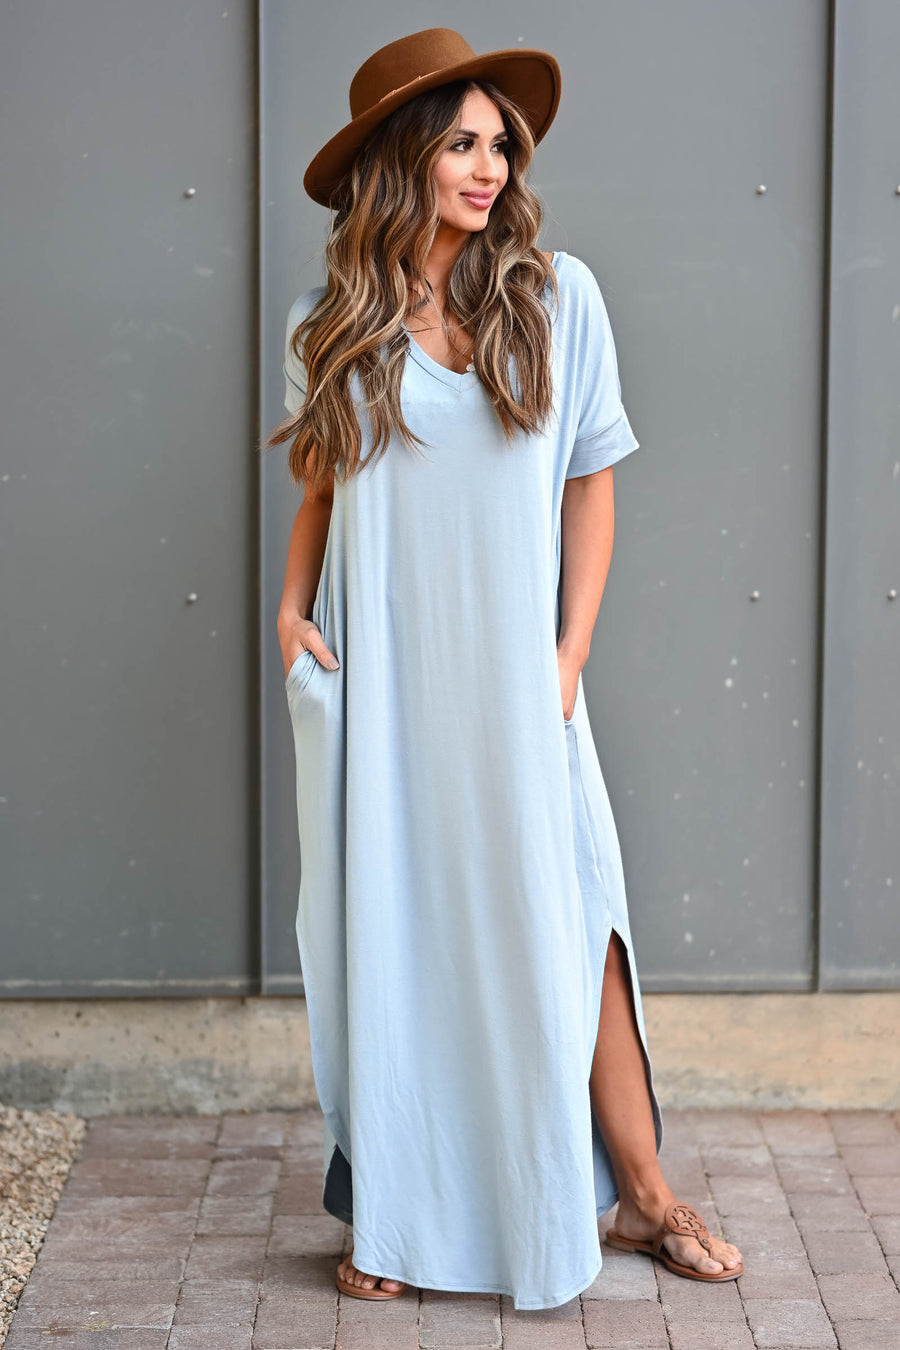 I'll Be By The Pool Maxi Dress - Sky Blue women's maxi dress featuring v-neckline, short dolman sleeves, side pockets, and rounded bottom hem with side slit detail closet candy front